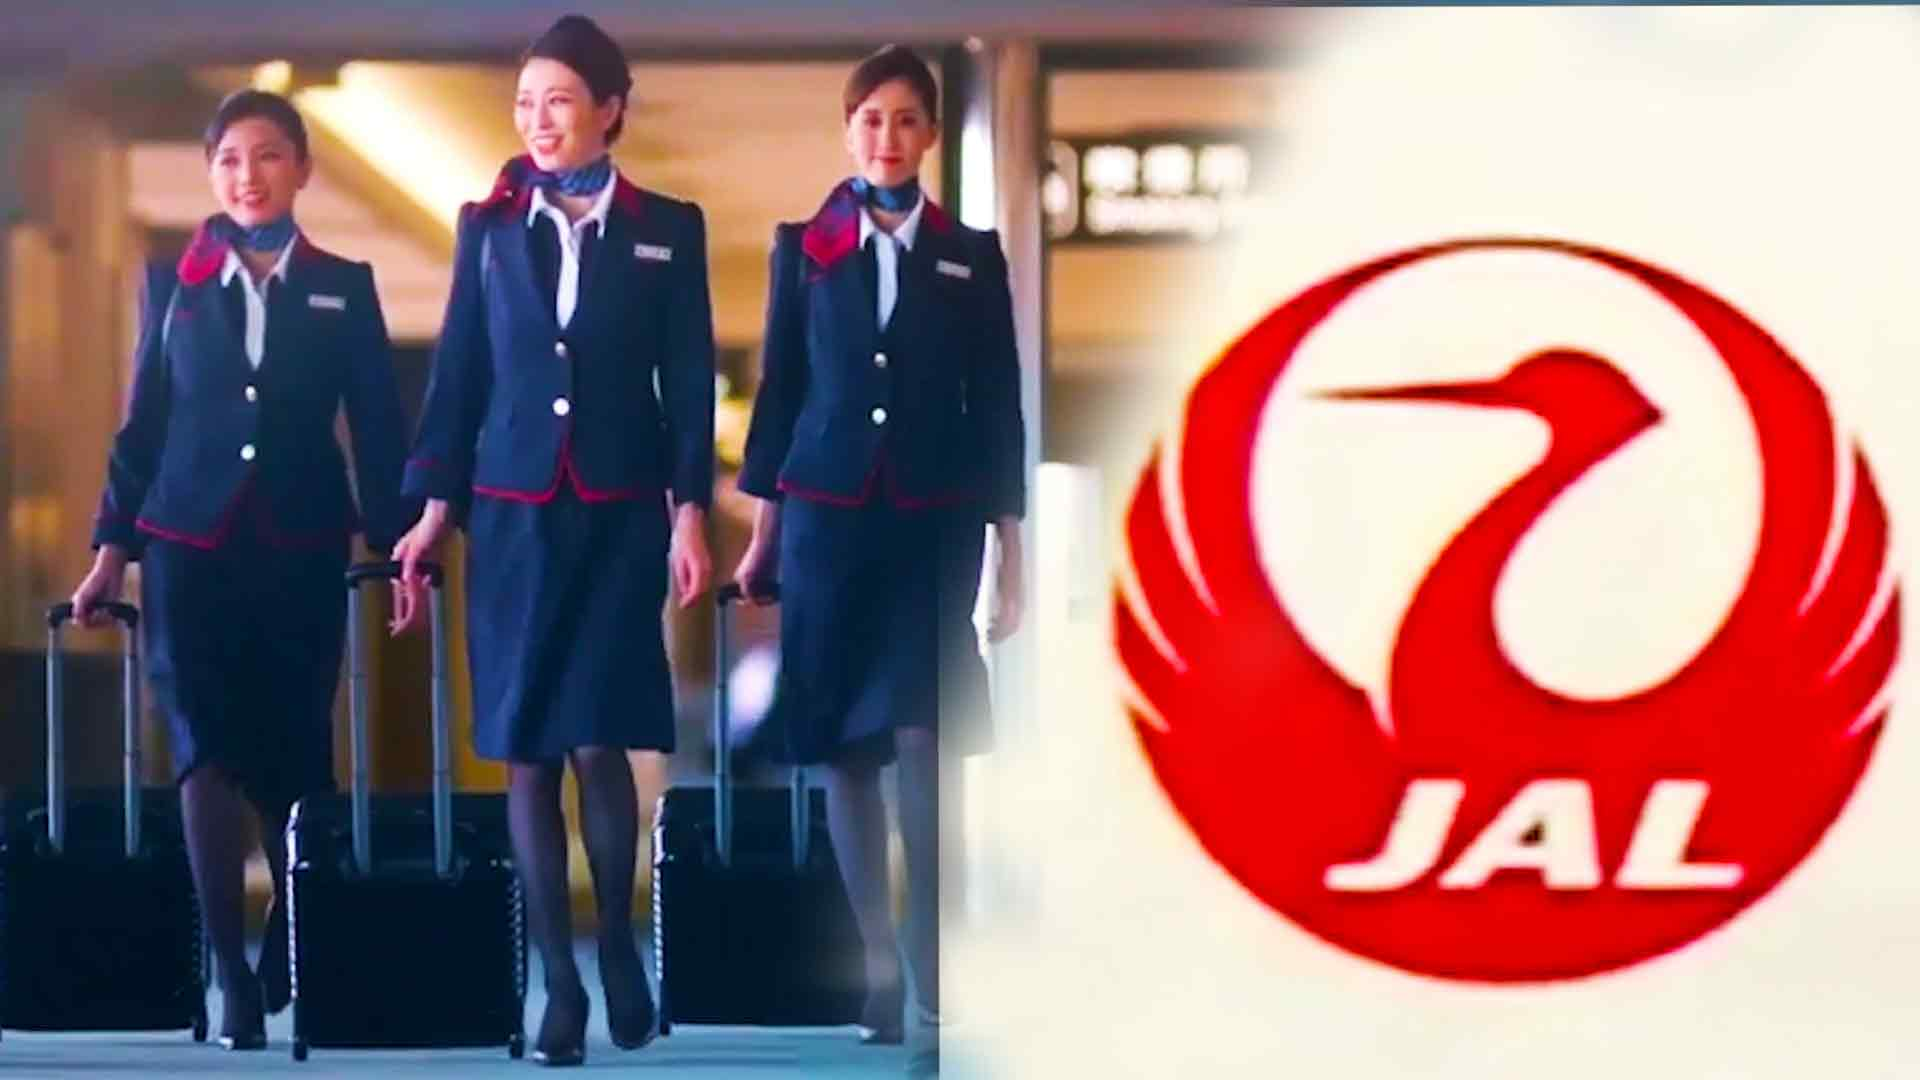 Saving Japan Airlines